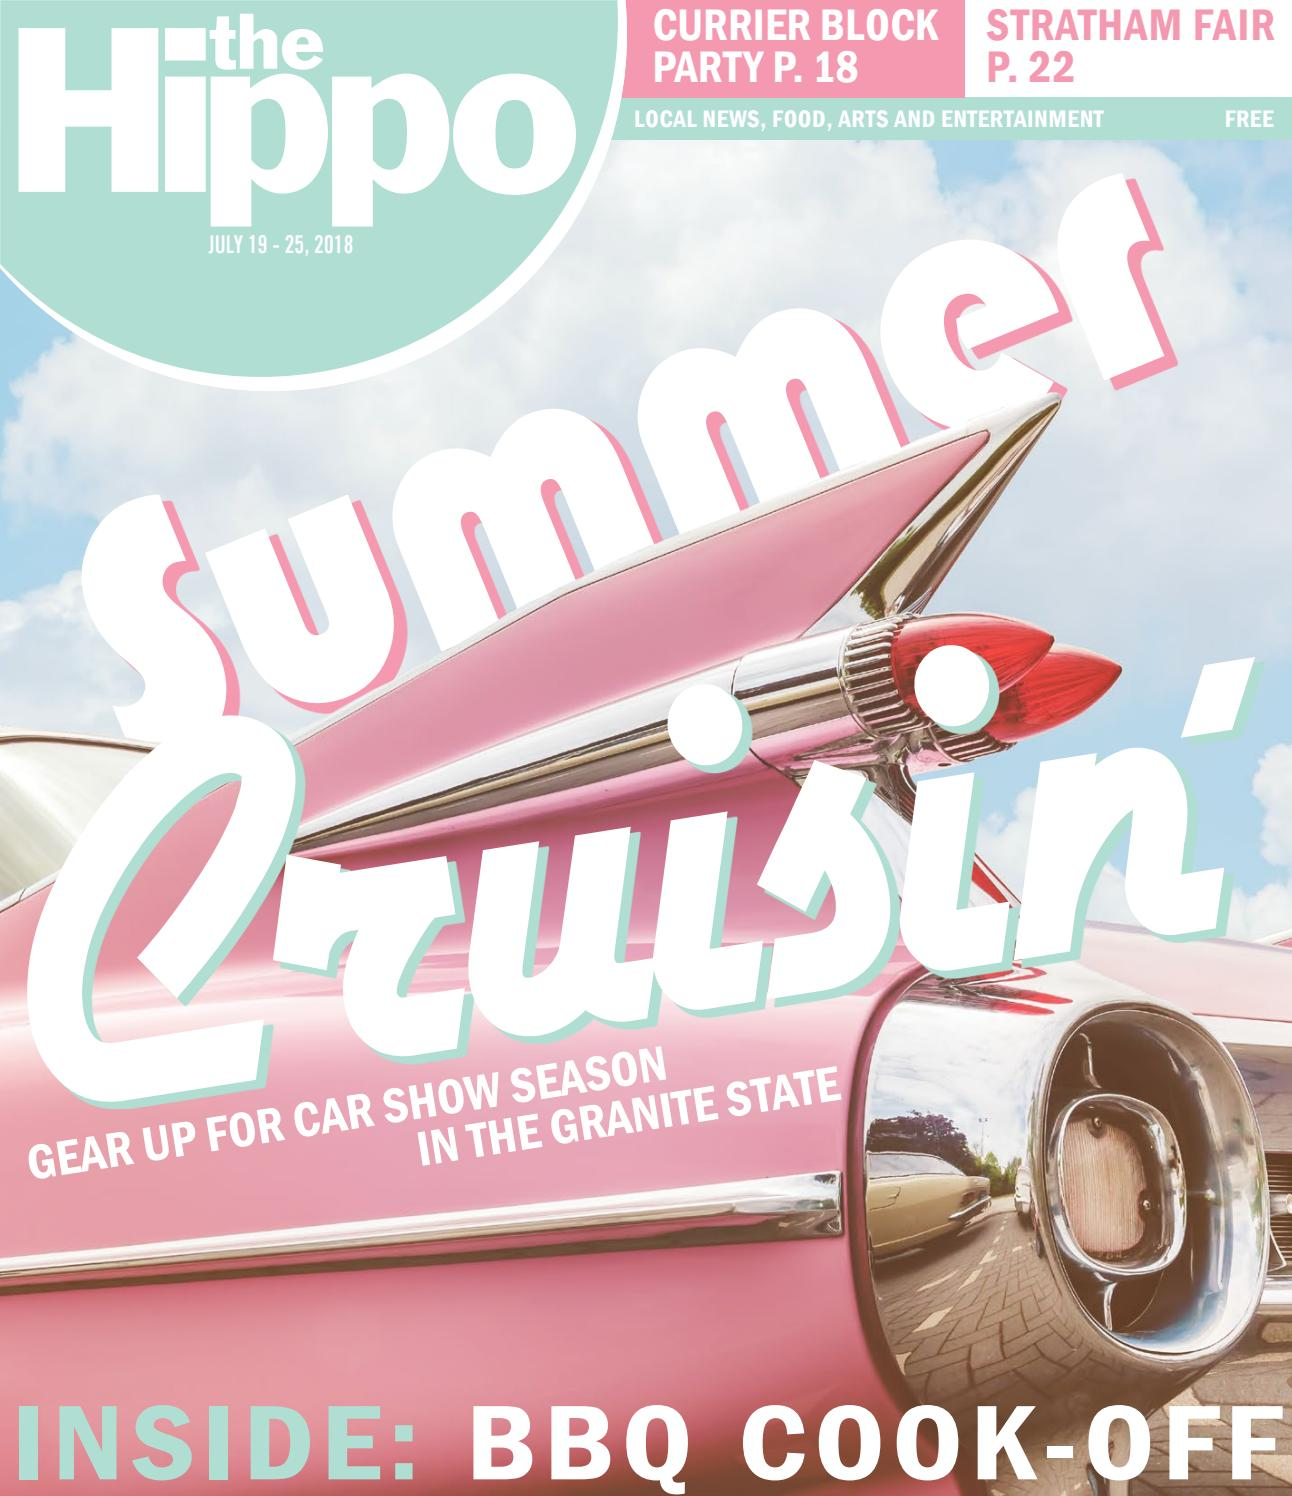 569338e3c5 Hippo 7-19-18 by The Hippo - issuu